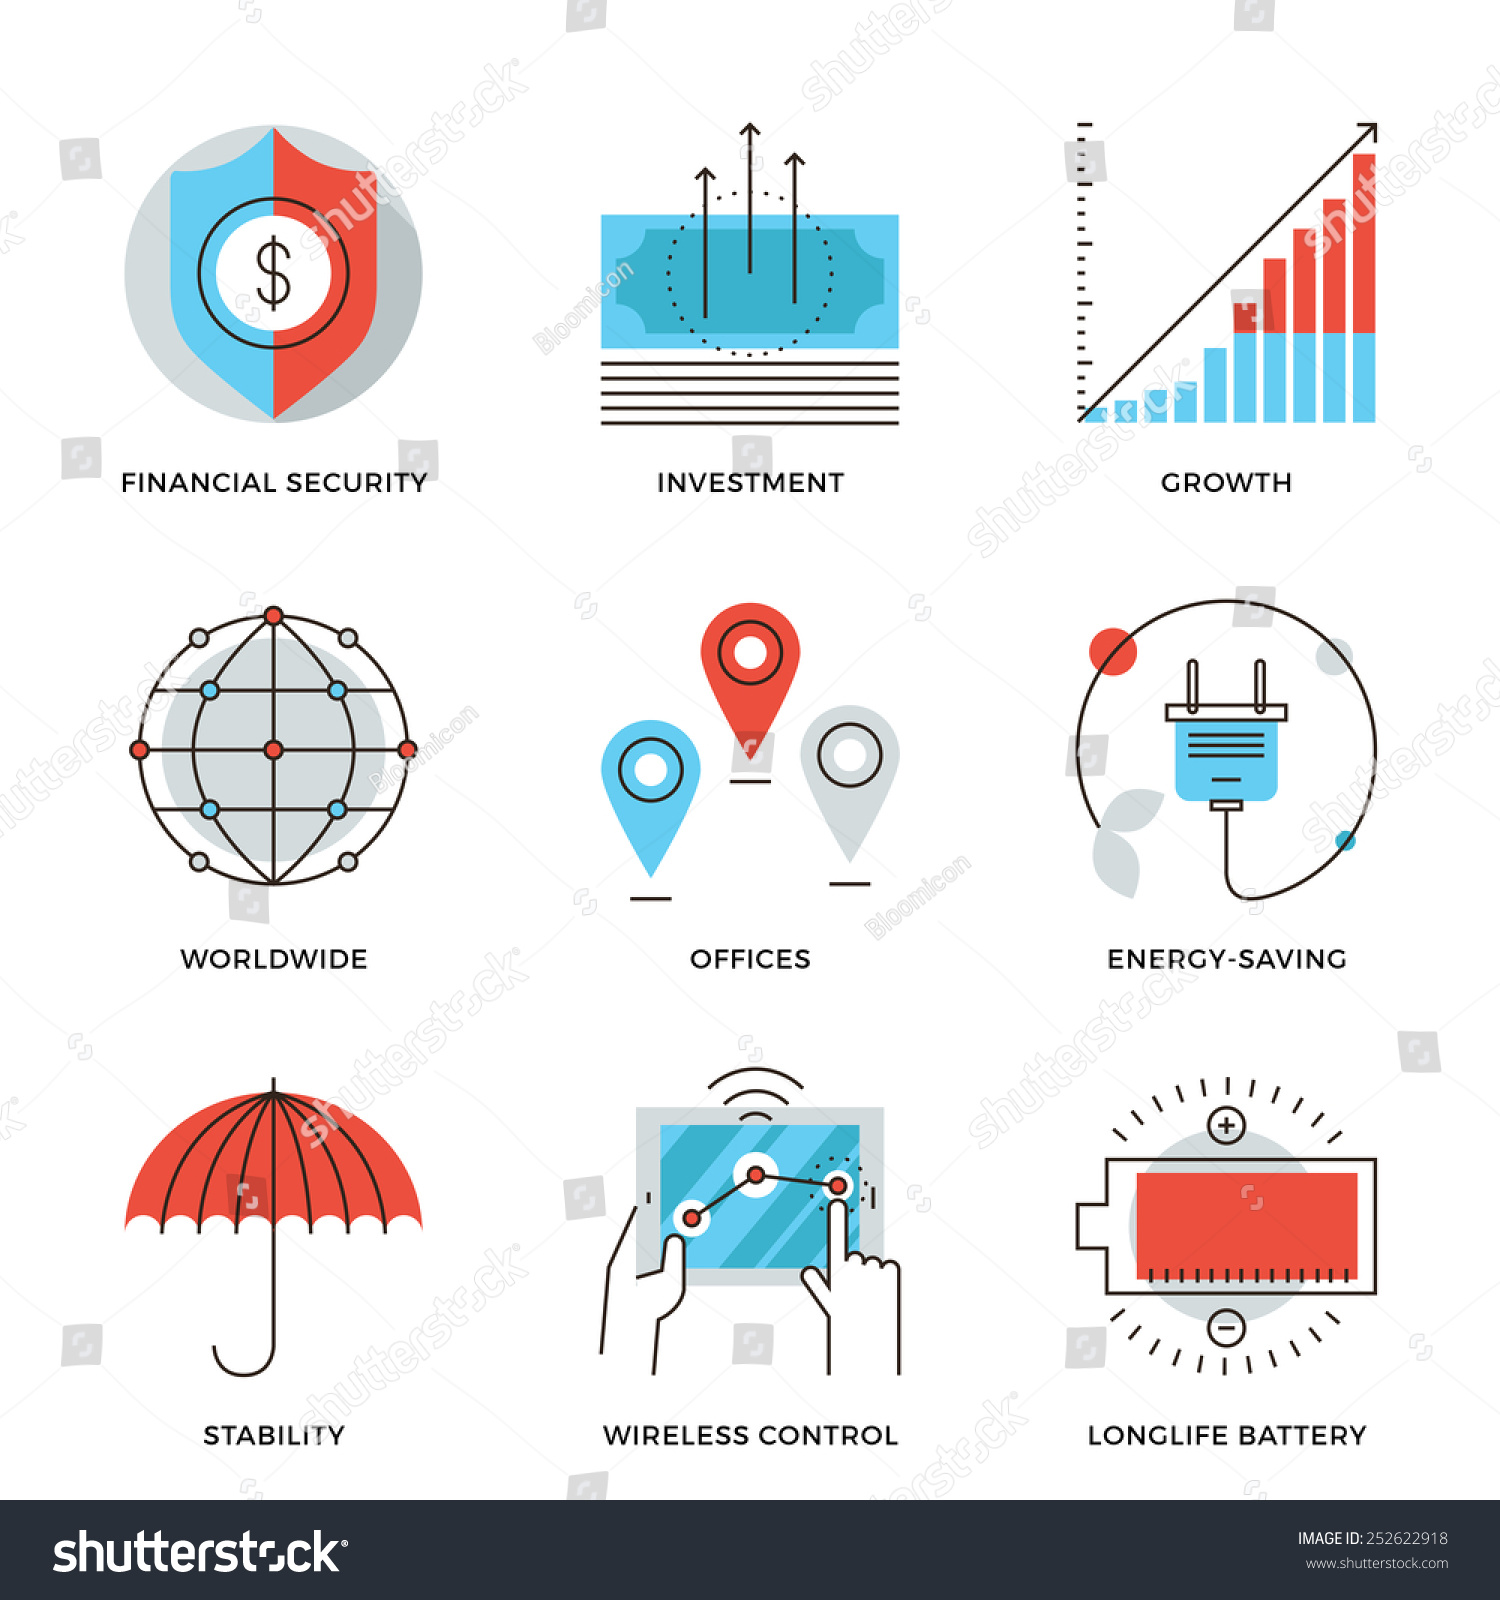 Royalty Free Thin Line Icons Of Worldwide Corporate 252622918